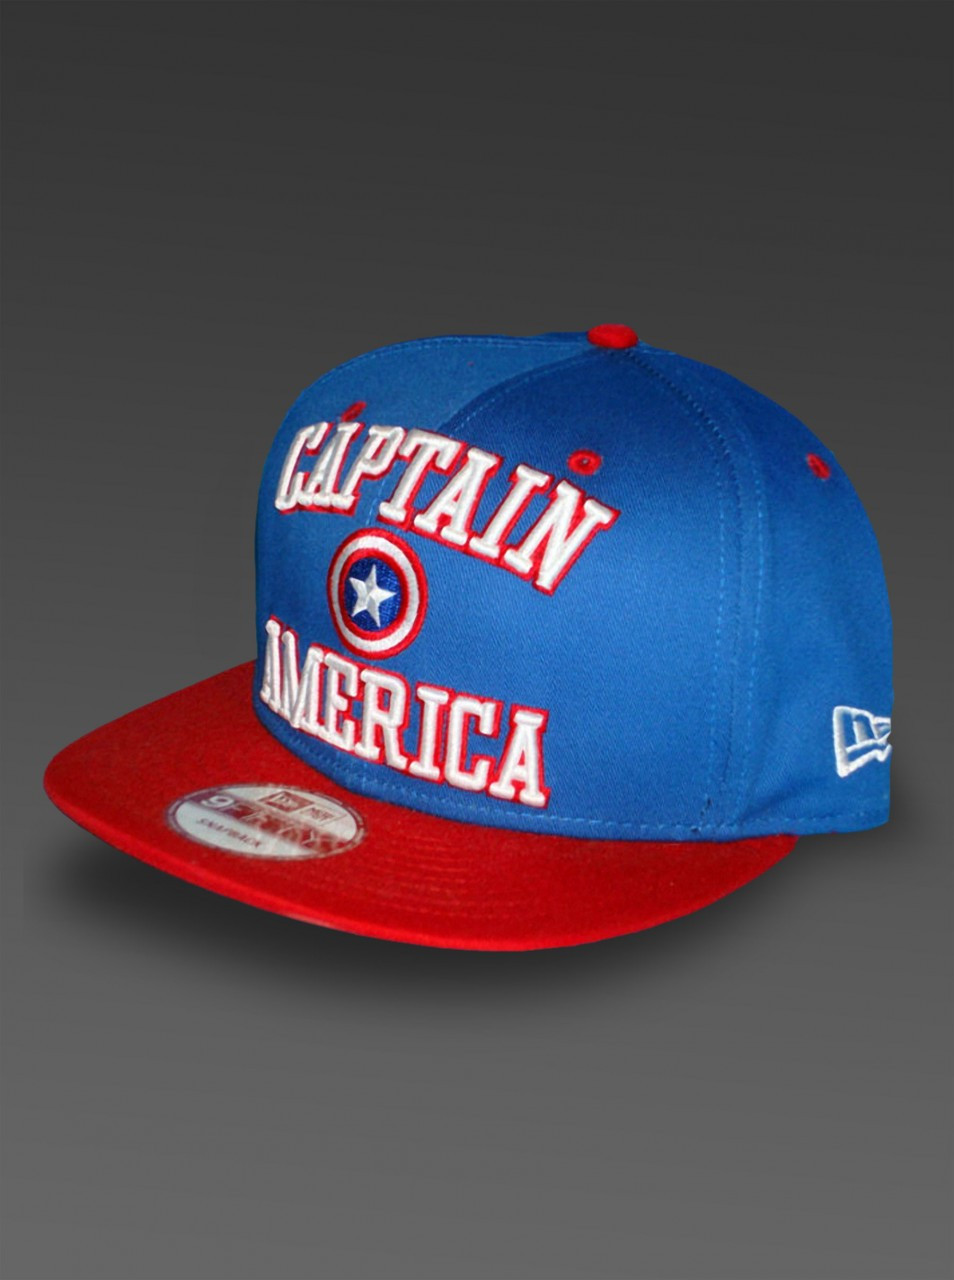 bed19206d34 ... CAPTAIN AMERICA Marvel Comics New Era 9Fifty Adjustable Snapback Hat.  Image 1